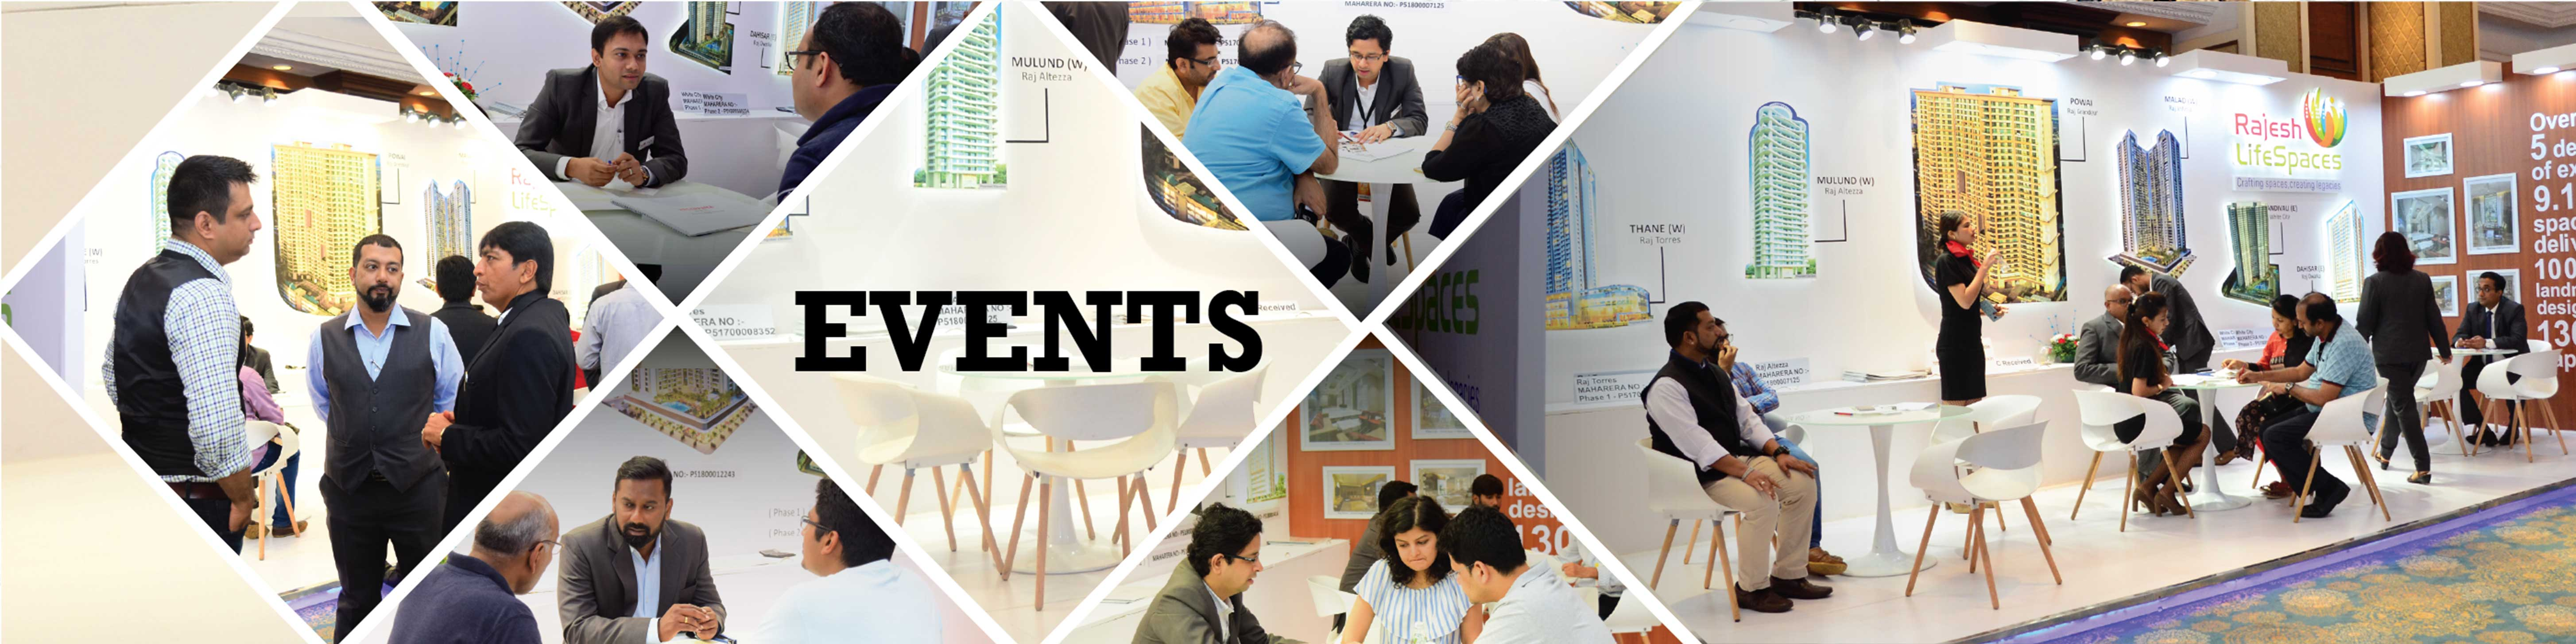 Rajesh LifeSpaces Events